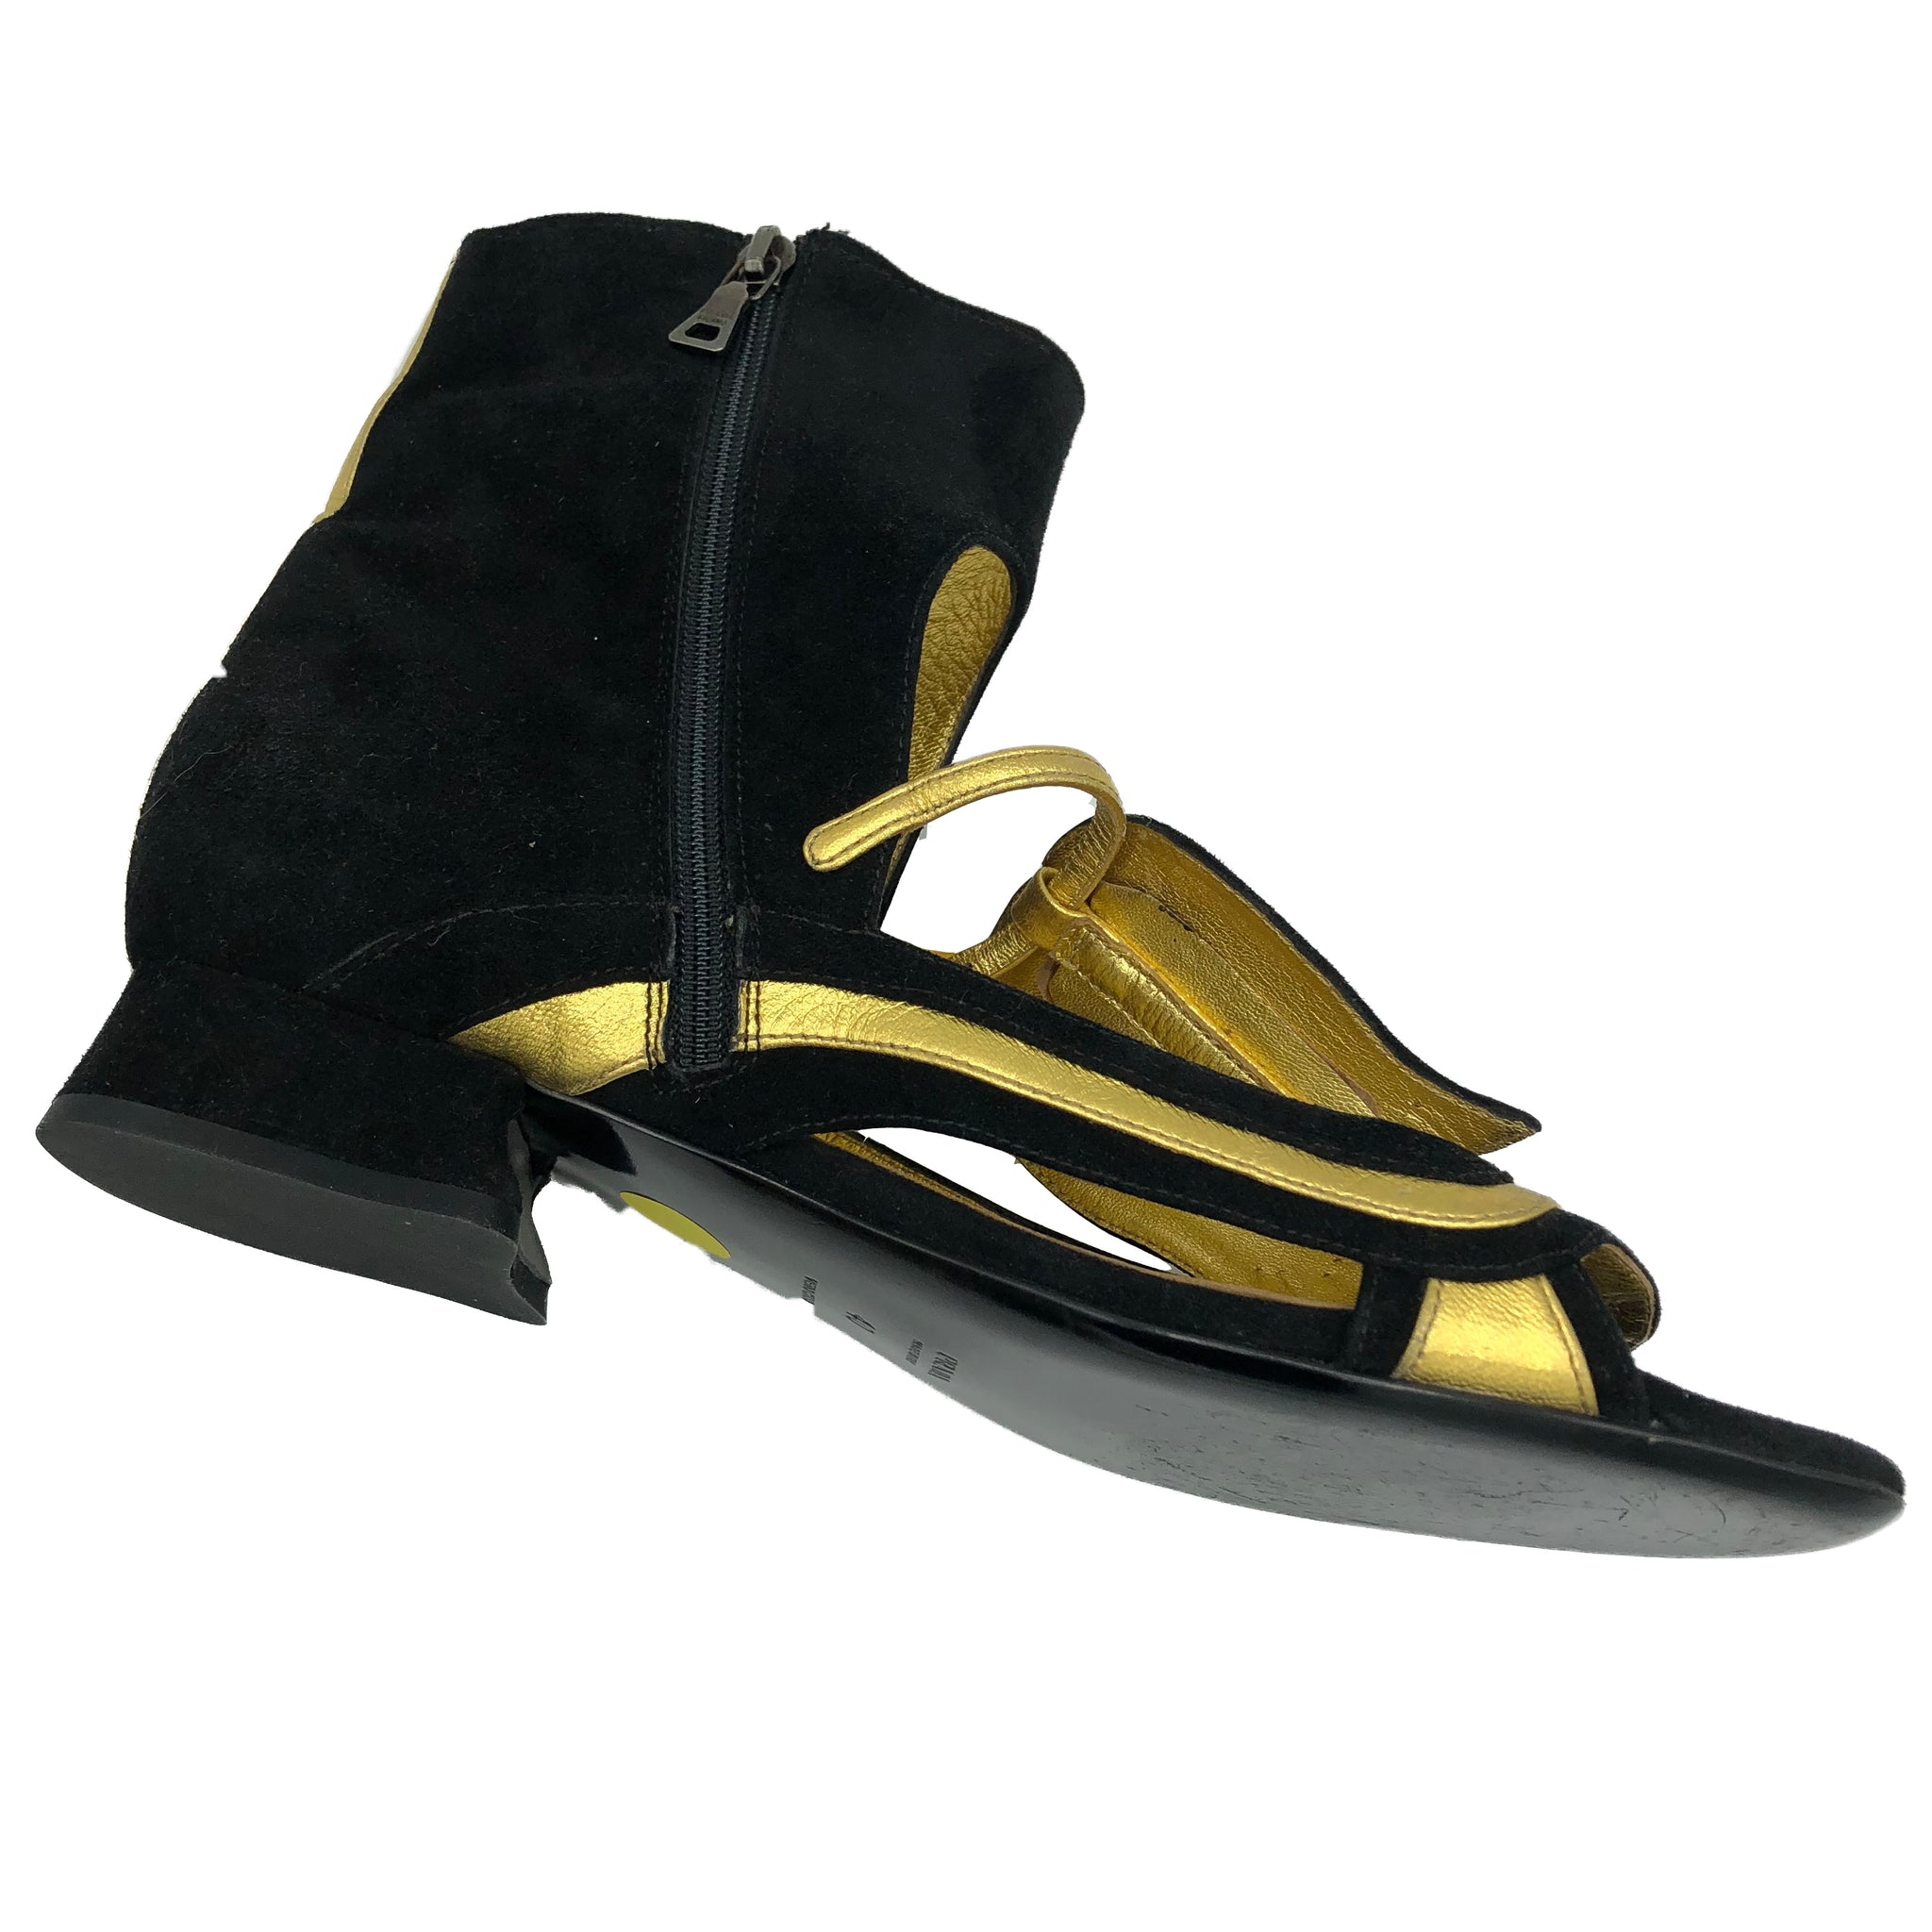 Prada 2008 Black and Gold Fairy Sandals 3 of 5